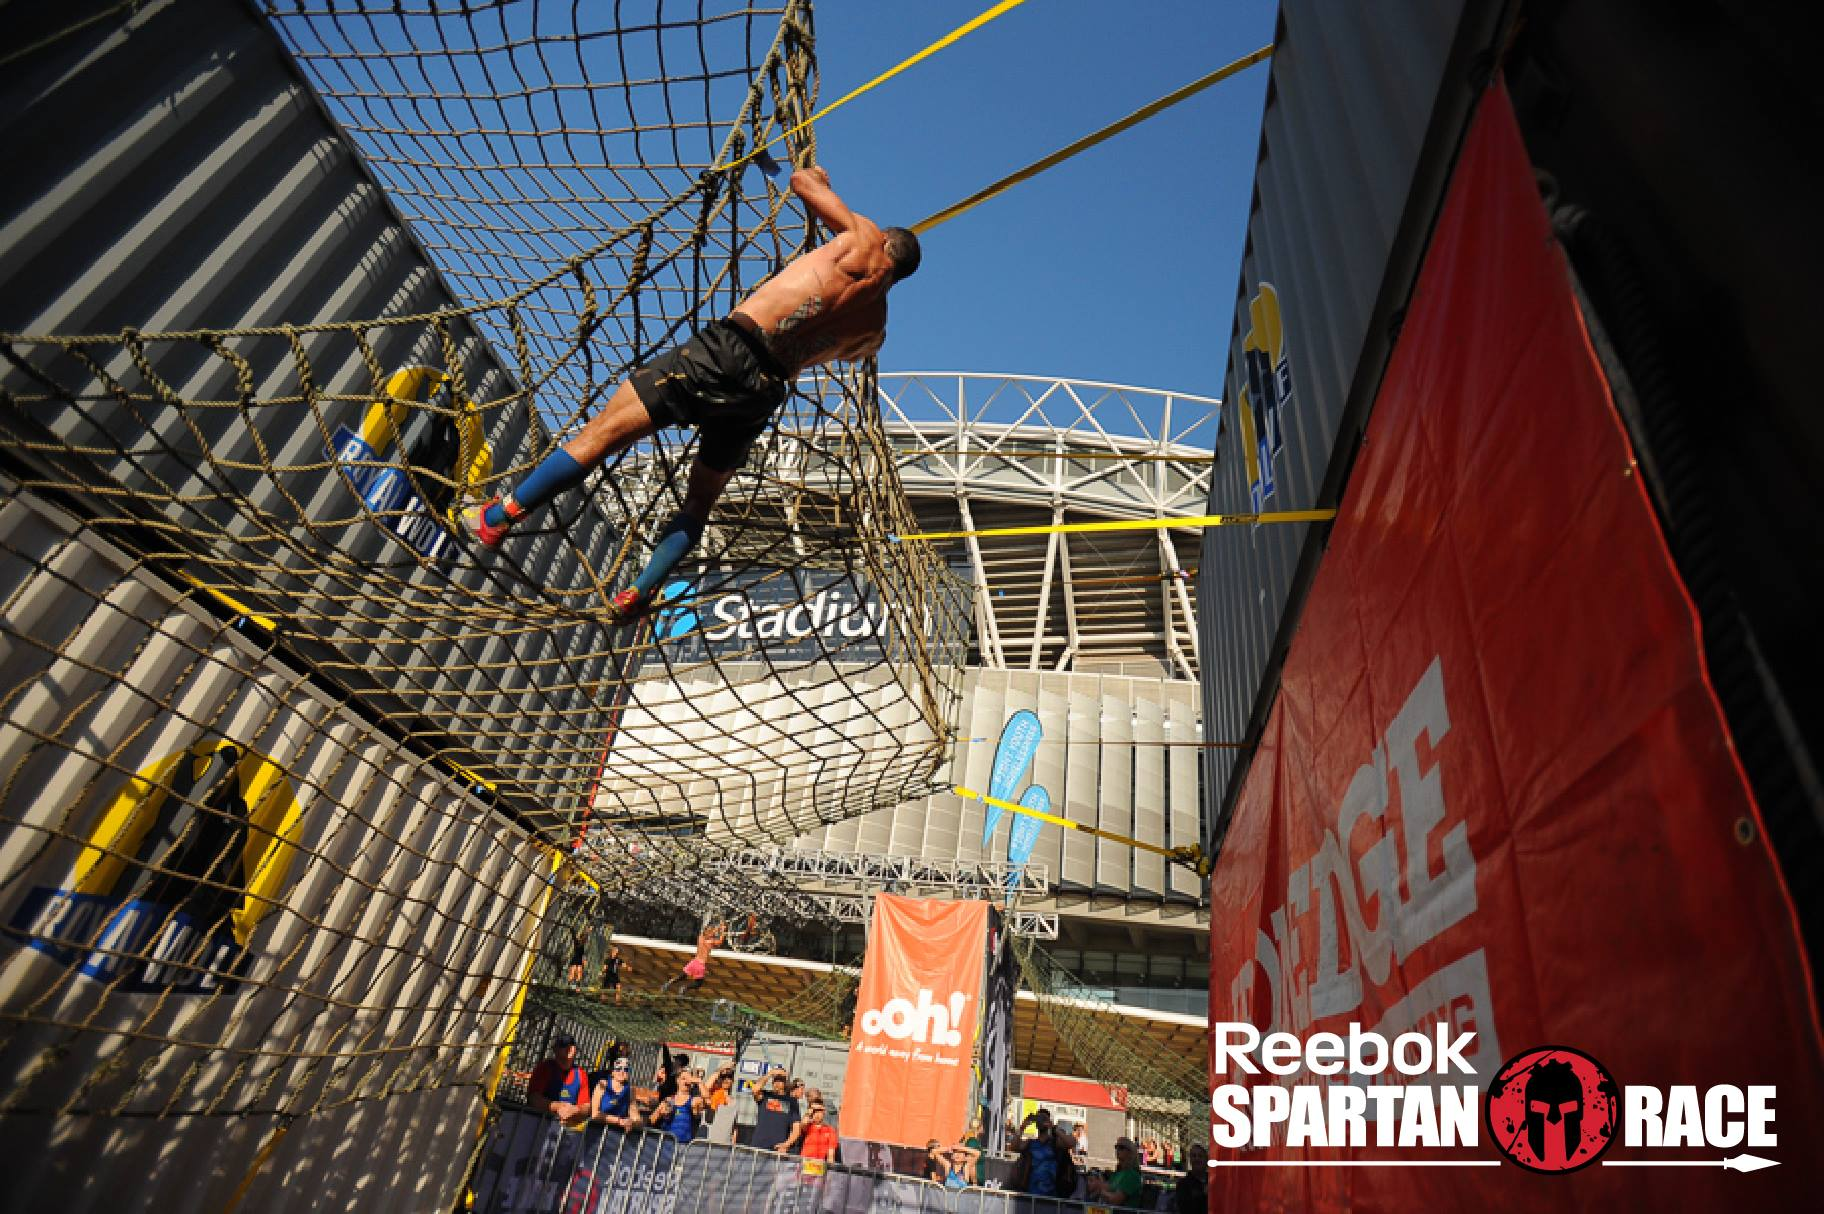 The Spartan 300 has 12 to 15 obstacles designed to test your all round strength, fitness and agility.